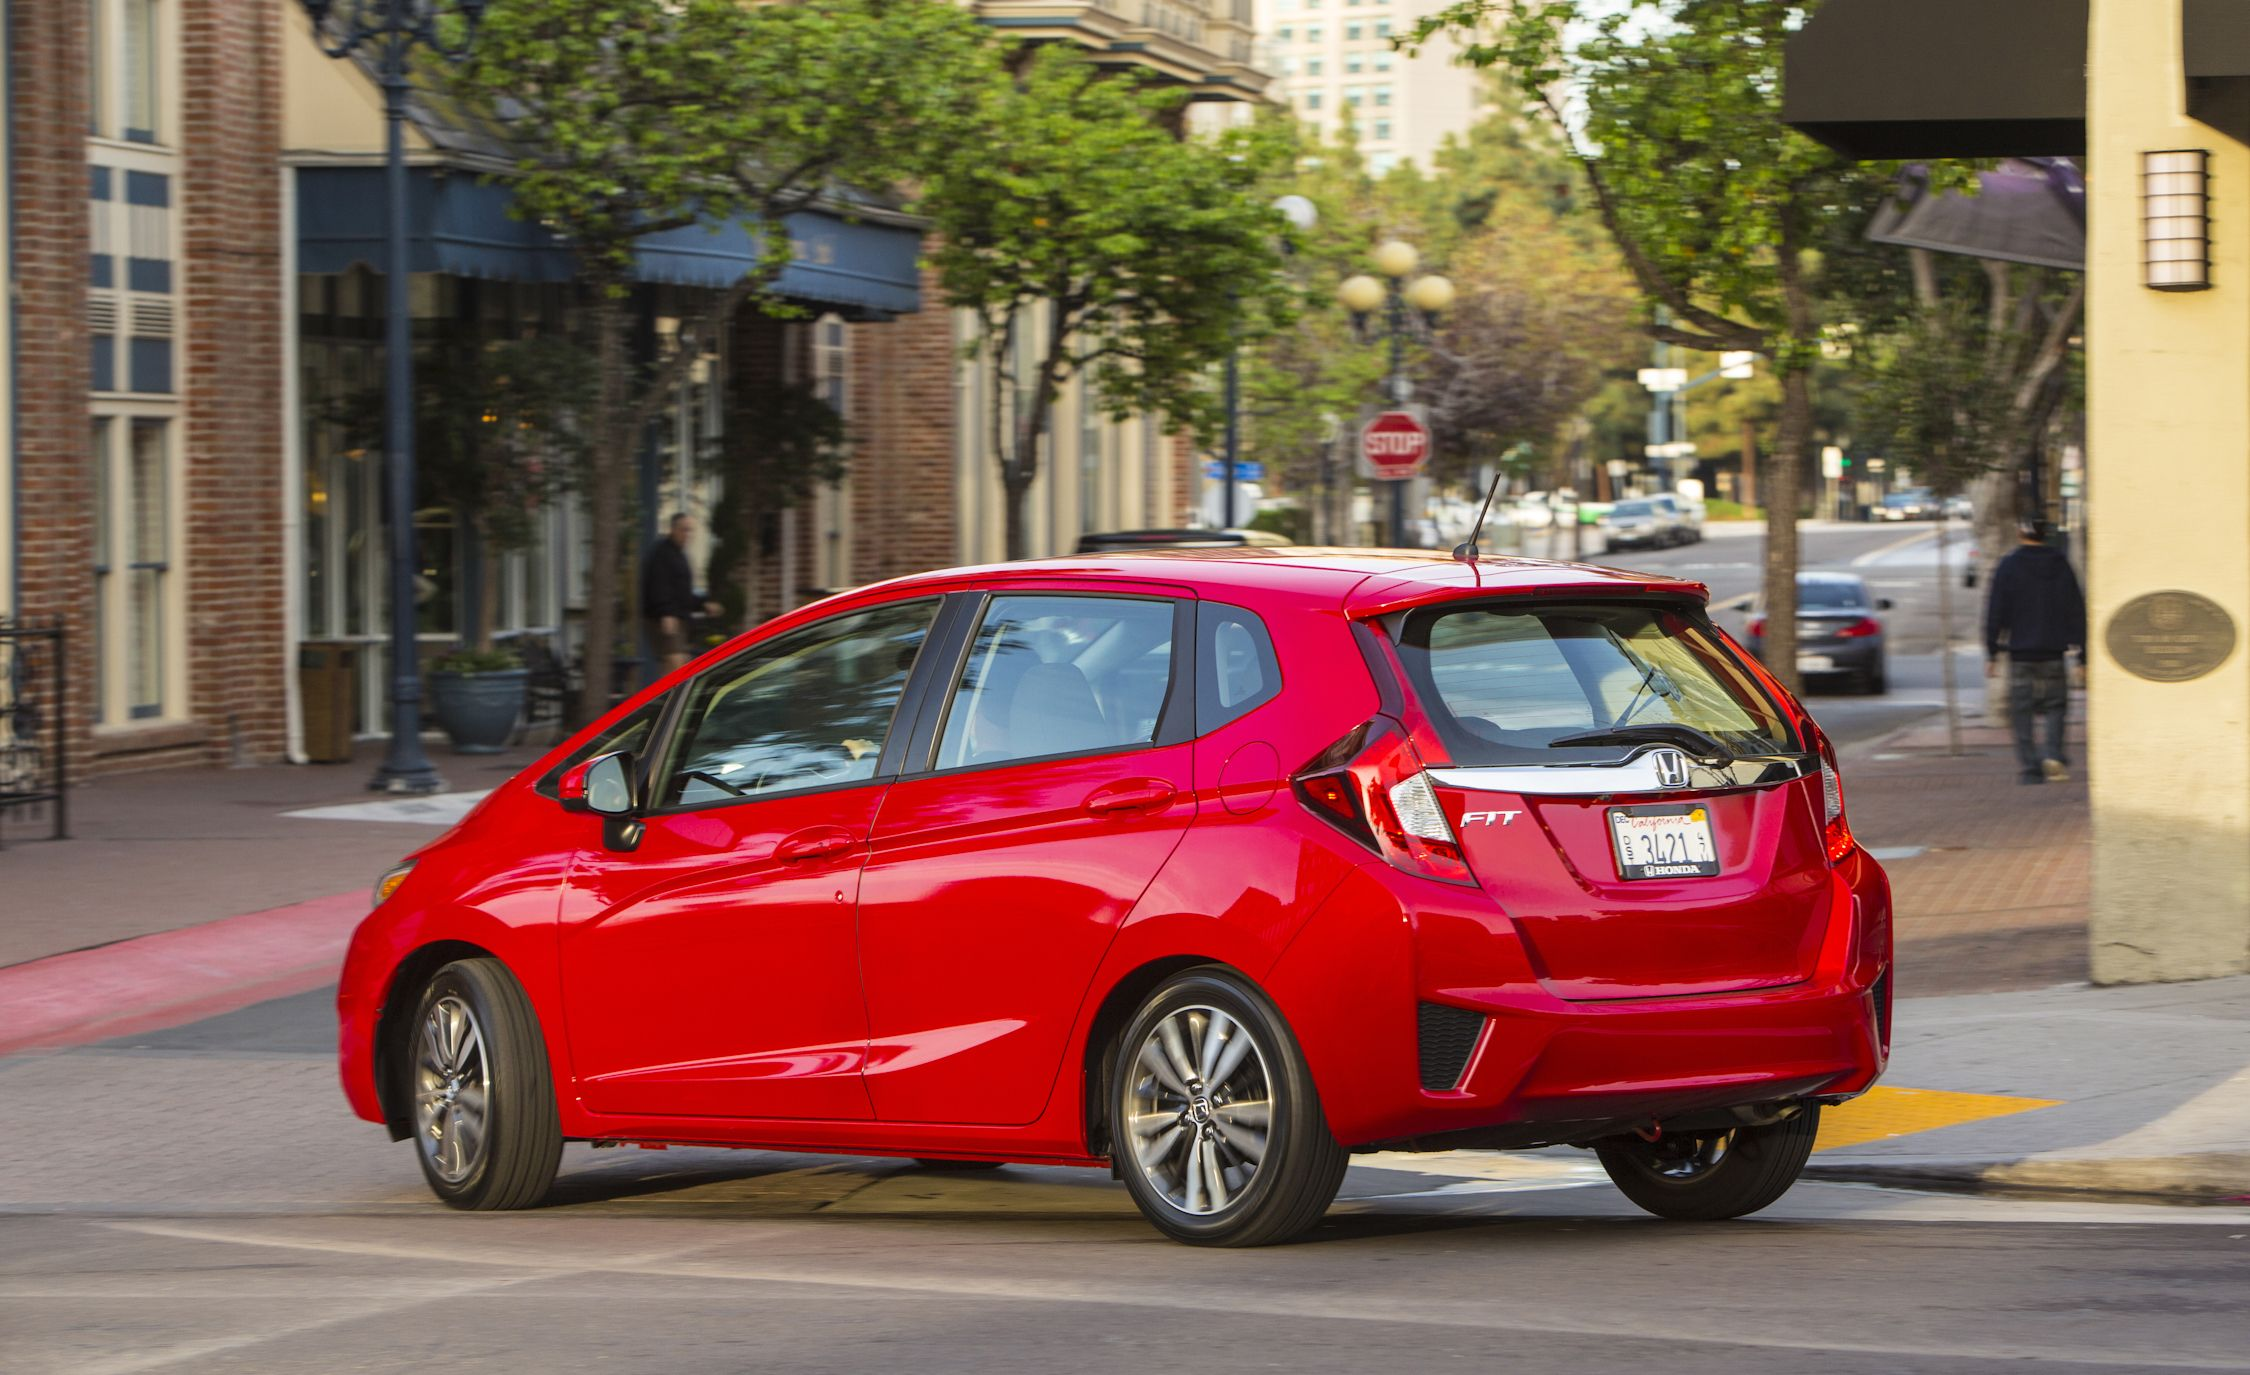 2019 Honda Fit Reviews | Honda Fit Price, Photos, and Specs | Car and Driver